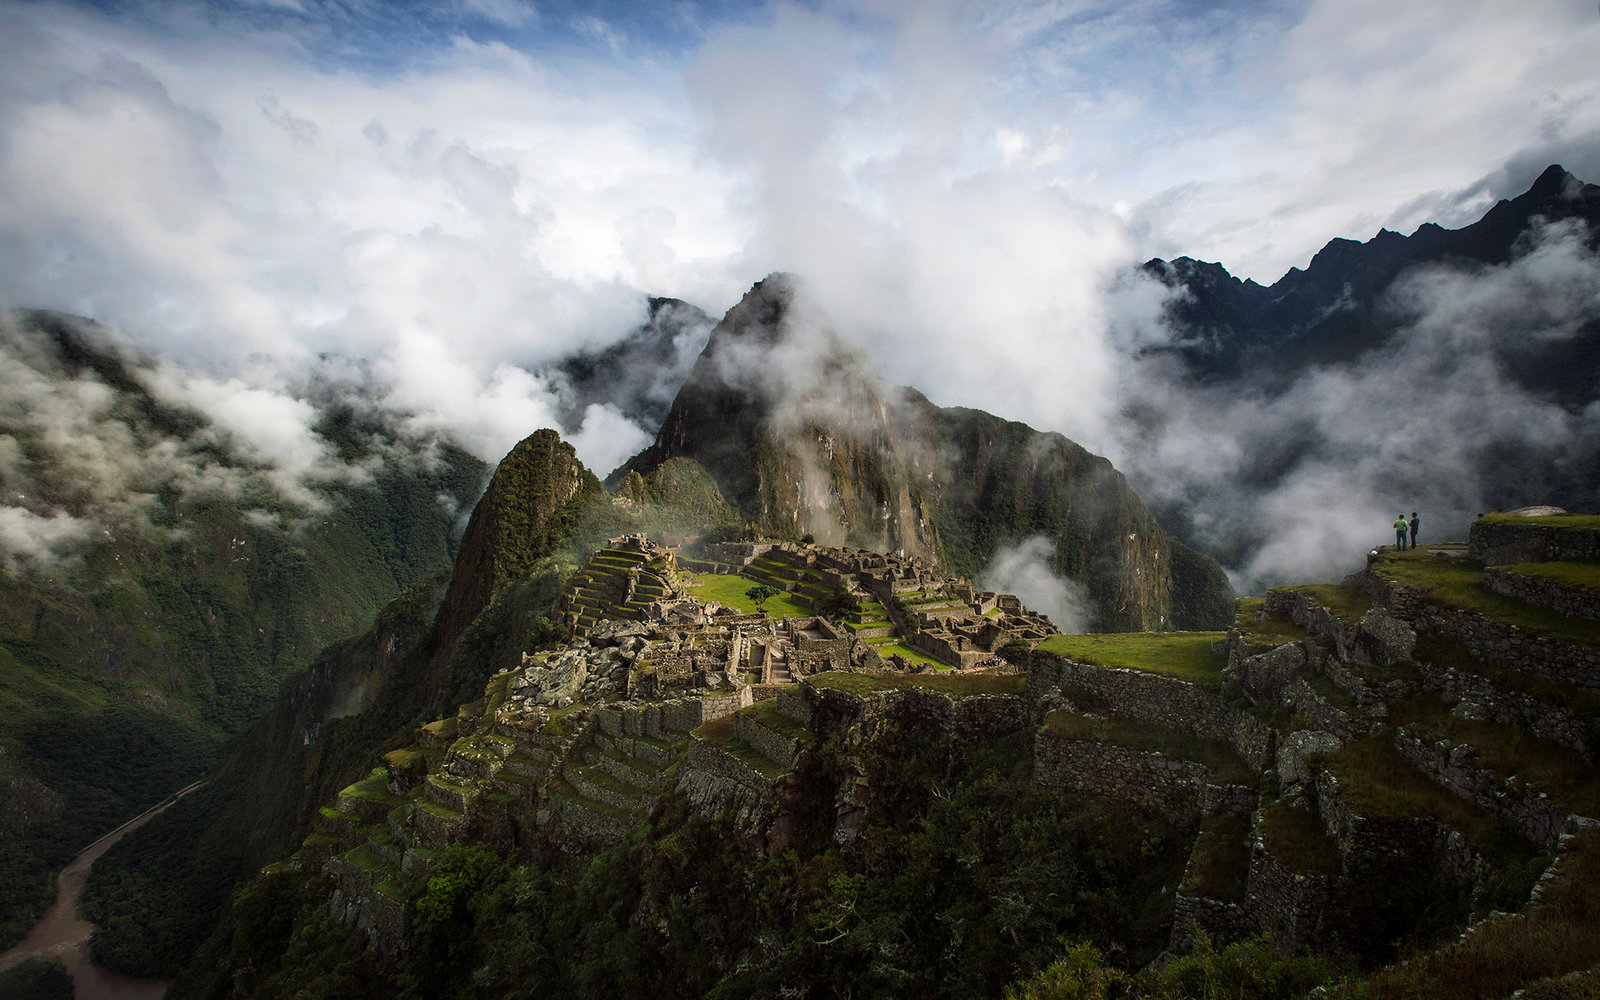 MACHU PICCHU, PERU - JANUARY 18: The Inca ruins of the Machu Picchu sanctuary on January 18, 2014 near Cusco, Peru. The 15th-century Inca site, MachuPicchu also known as 'The Lost City of the Incas' is situated high above the Urubamba River. Now a UNESCO